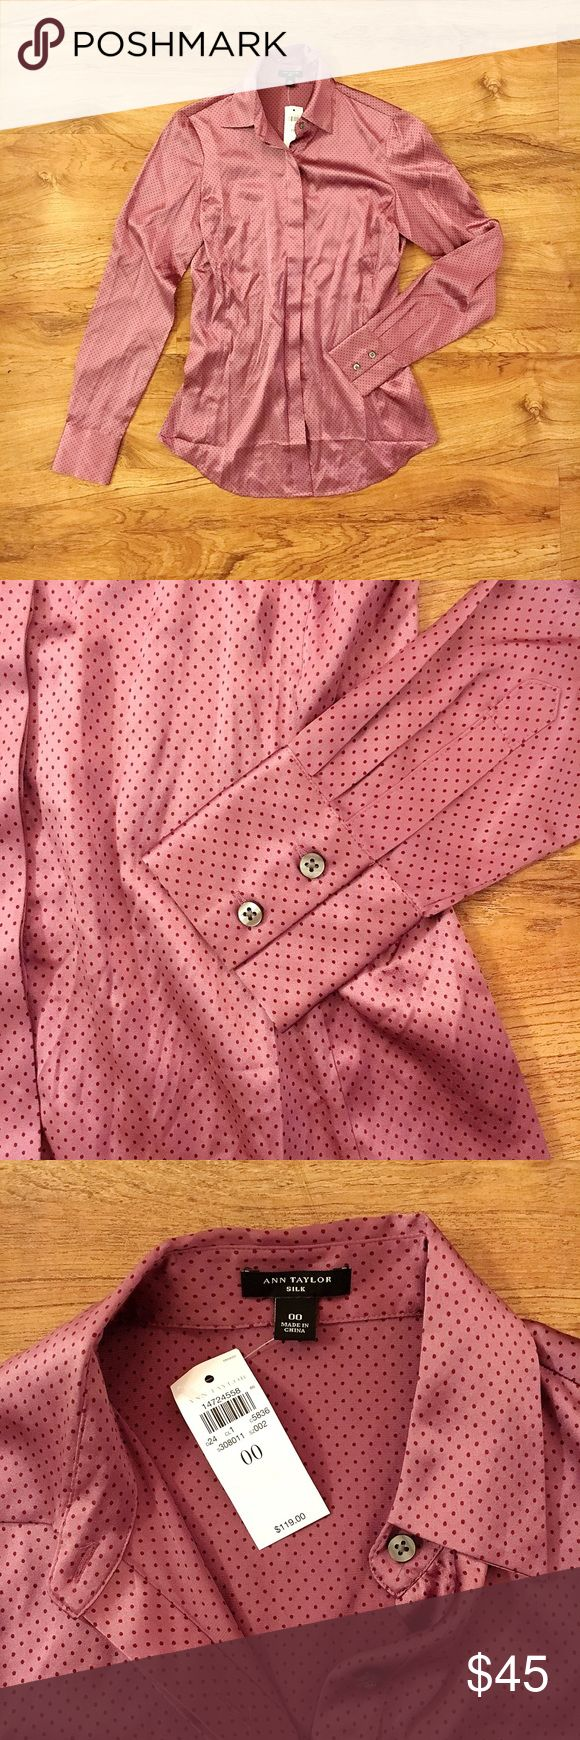 Ann Taylor Silk Button Up Blouse, Purple Polka Dot NWT, Ann Taylor 92% silk 8% spandex button up blouse, purple polka dots, grey buttons, size 00.  So soft and classy!  Perfect for the office or to dress down for a night out. Measurements: Pit to hem- 15.5 inches Across the chest- 17 inches Ann Taylor Tops Button Down Shirts